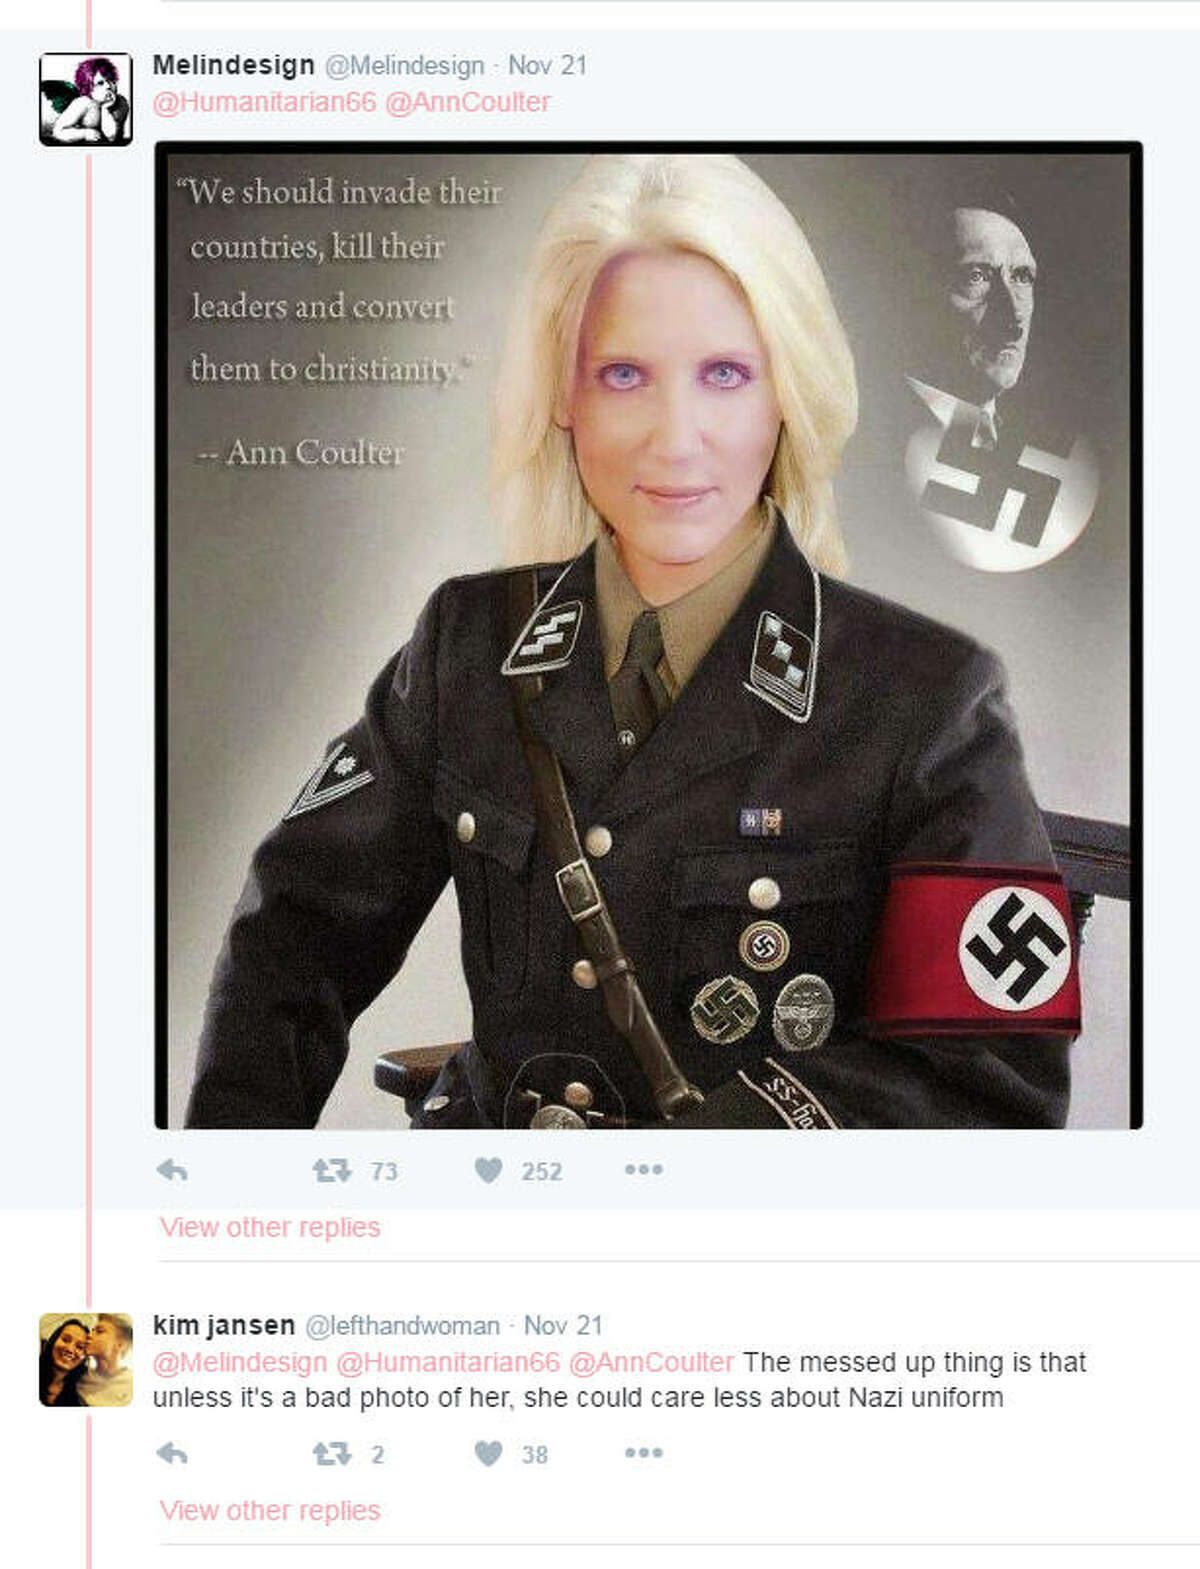 Critics lash out A few critics went to some extremes to criticize conservative commentator Ann Coulter, who defended the American Nazi party in a tweet. The controversy set of a mini-firestorm on Twitter.